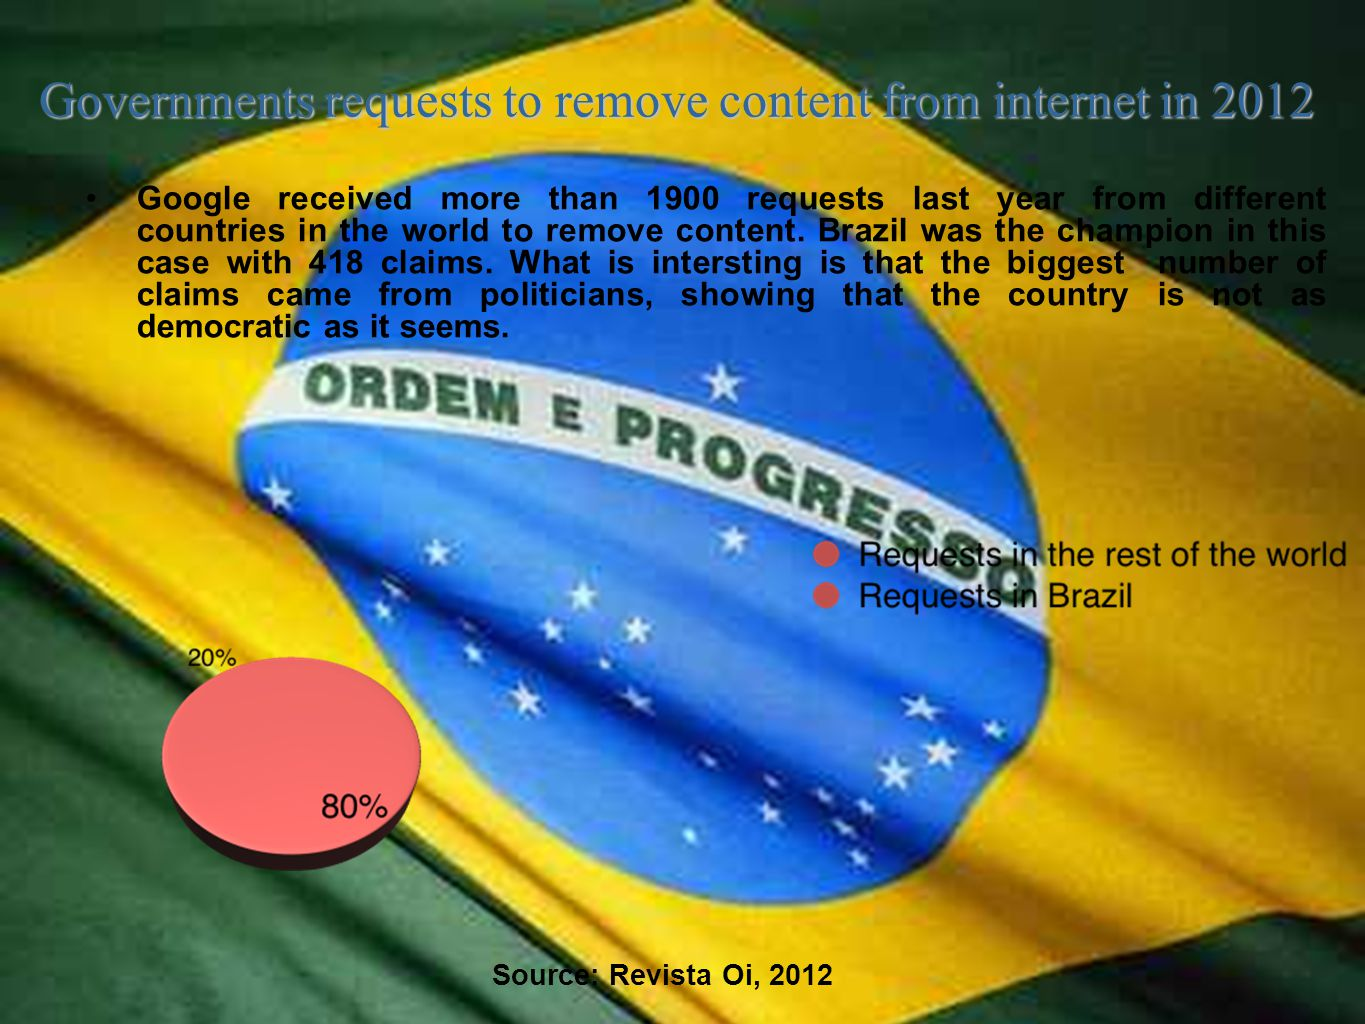 Governments requests to remove content from internet in 2012 Source: Revista Oi, 2012 Google received more than 1900 requests last year from different countries in the world to remove content.